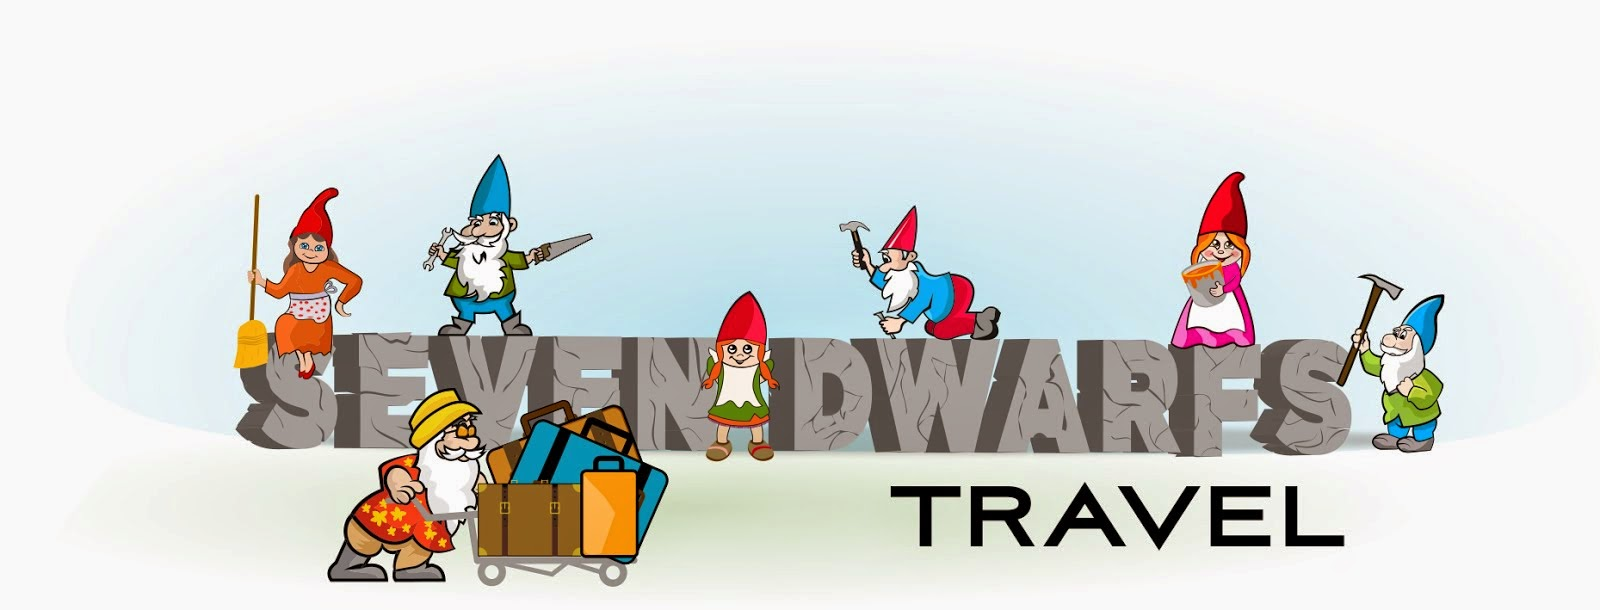 Seven Dwarfs Travel